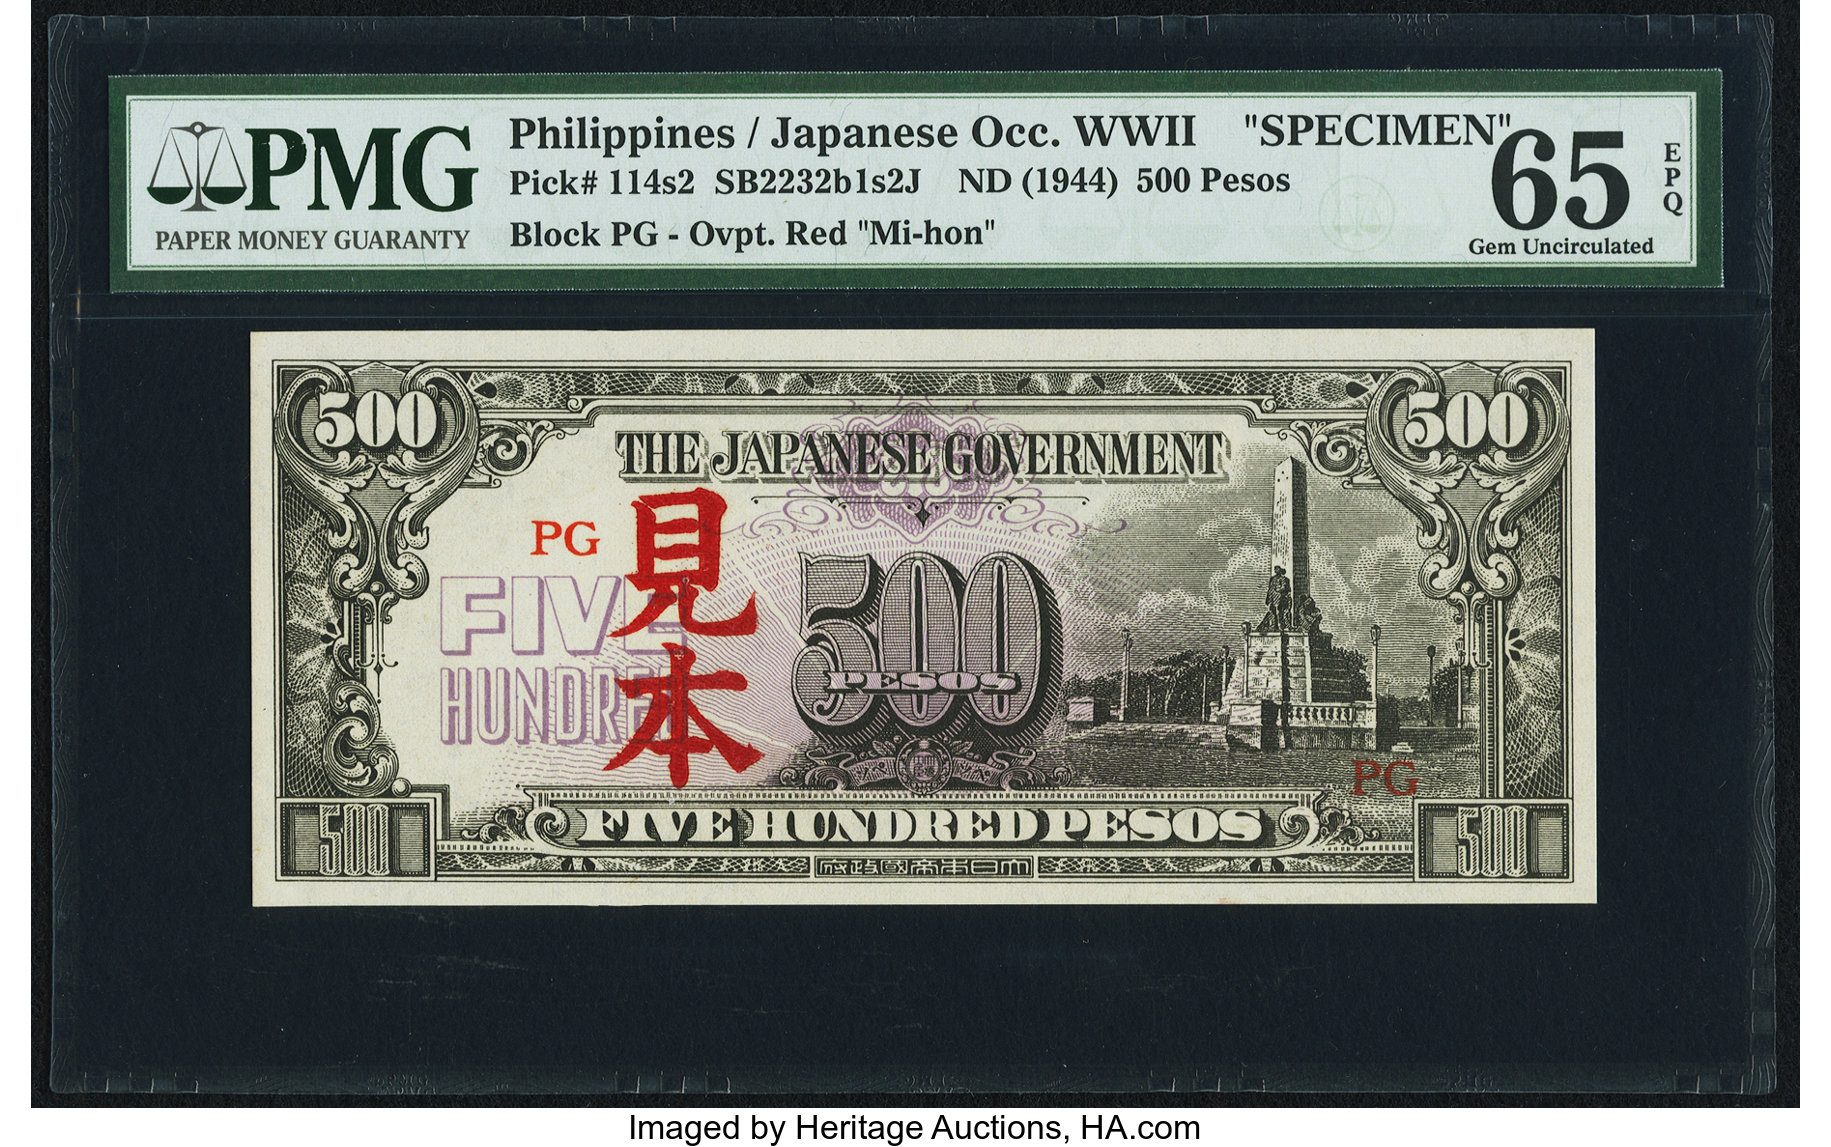 Philippines Japanese Government 500 Pesos ND 1944) Pick